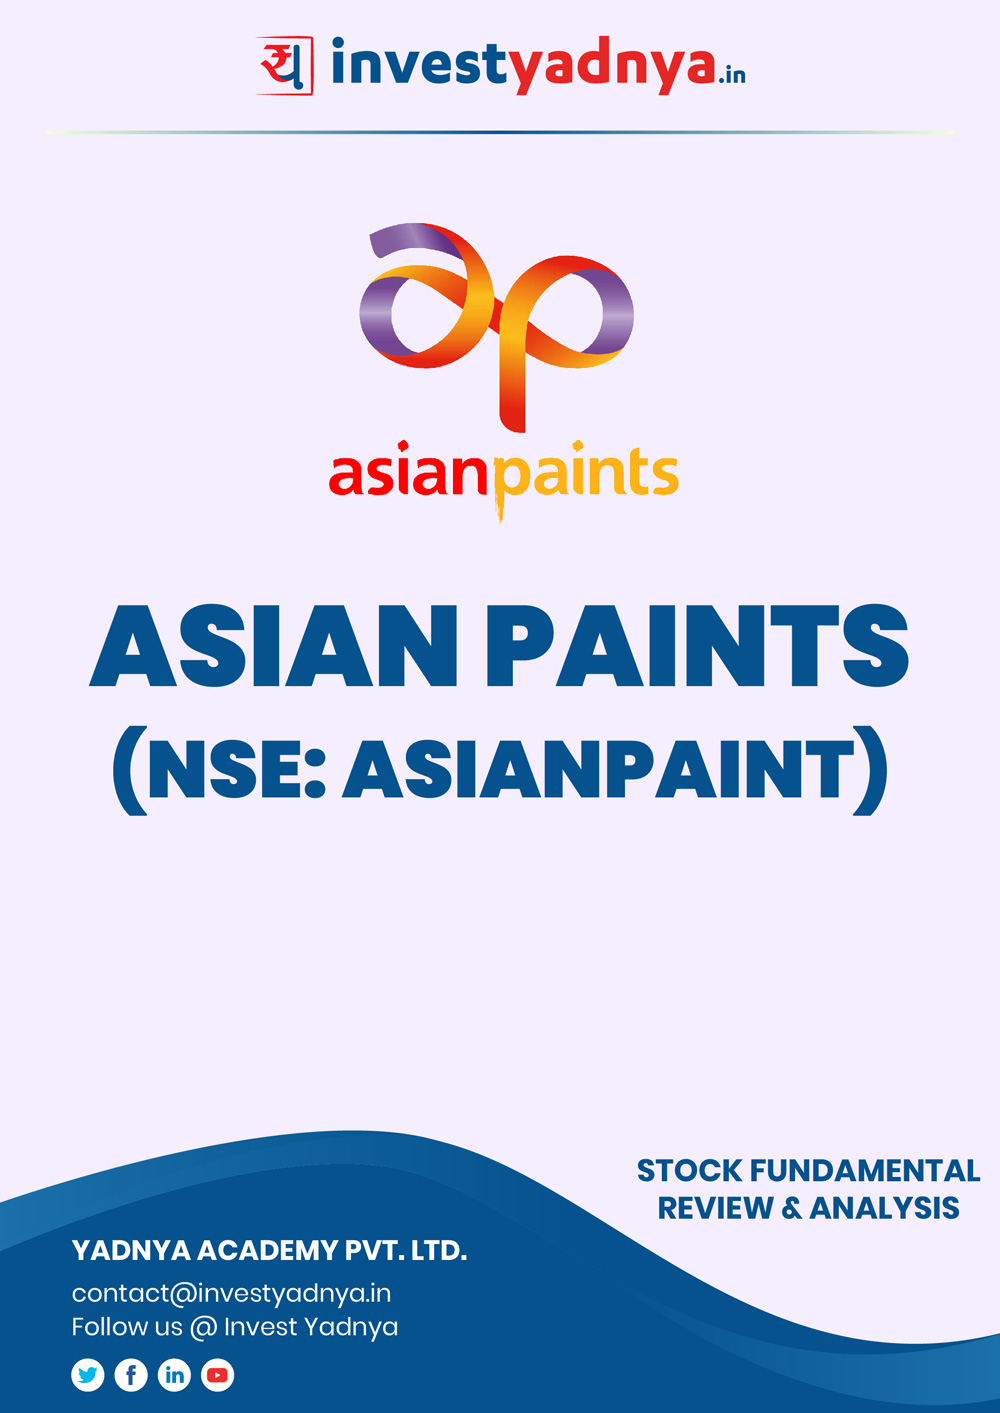 This e-book contains in-depth fundamental analysis of Asian Paints considering both Financial and Equity Research Parameters. It reviews the company, industry competitors, shareholding pattern, financials, and annual performance. ✔ Detailed Research ✔ Quality Reports